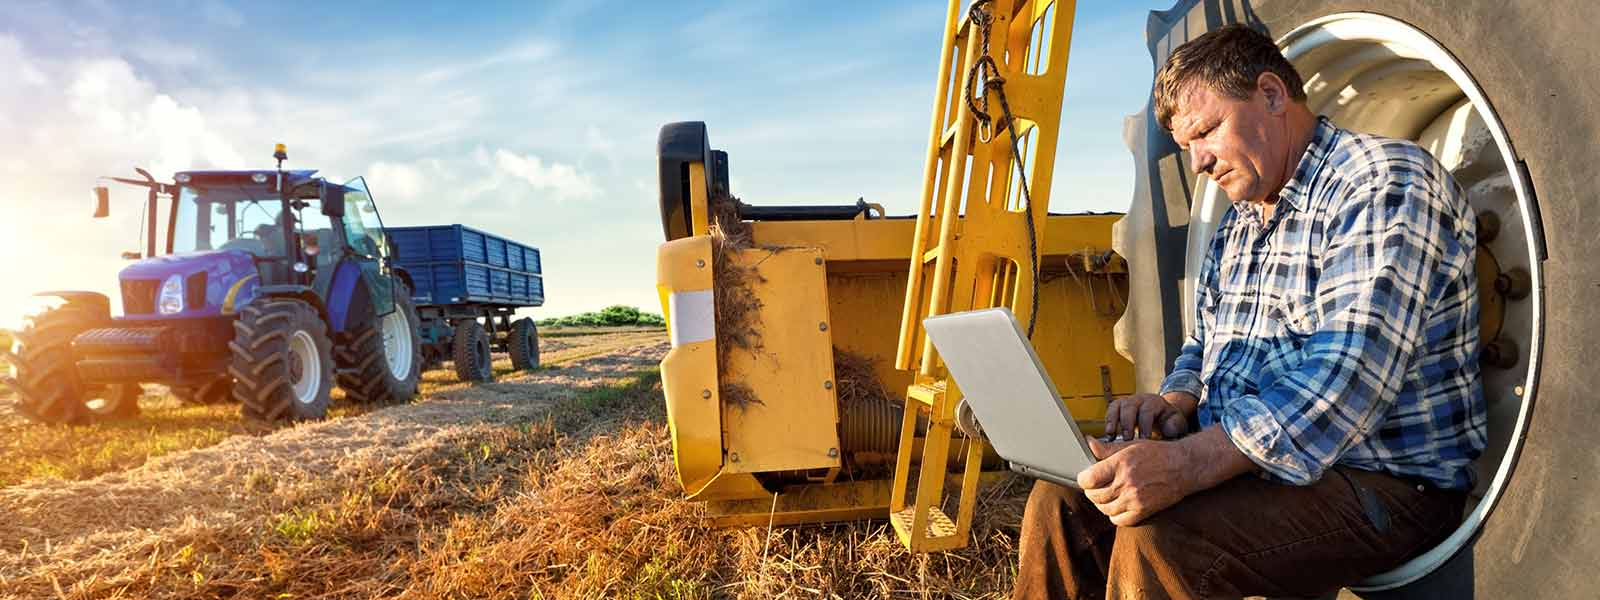 A farmer uses a computer in the field